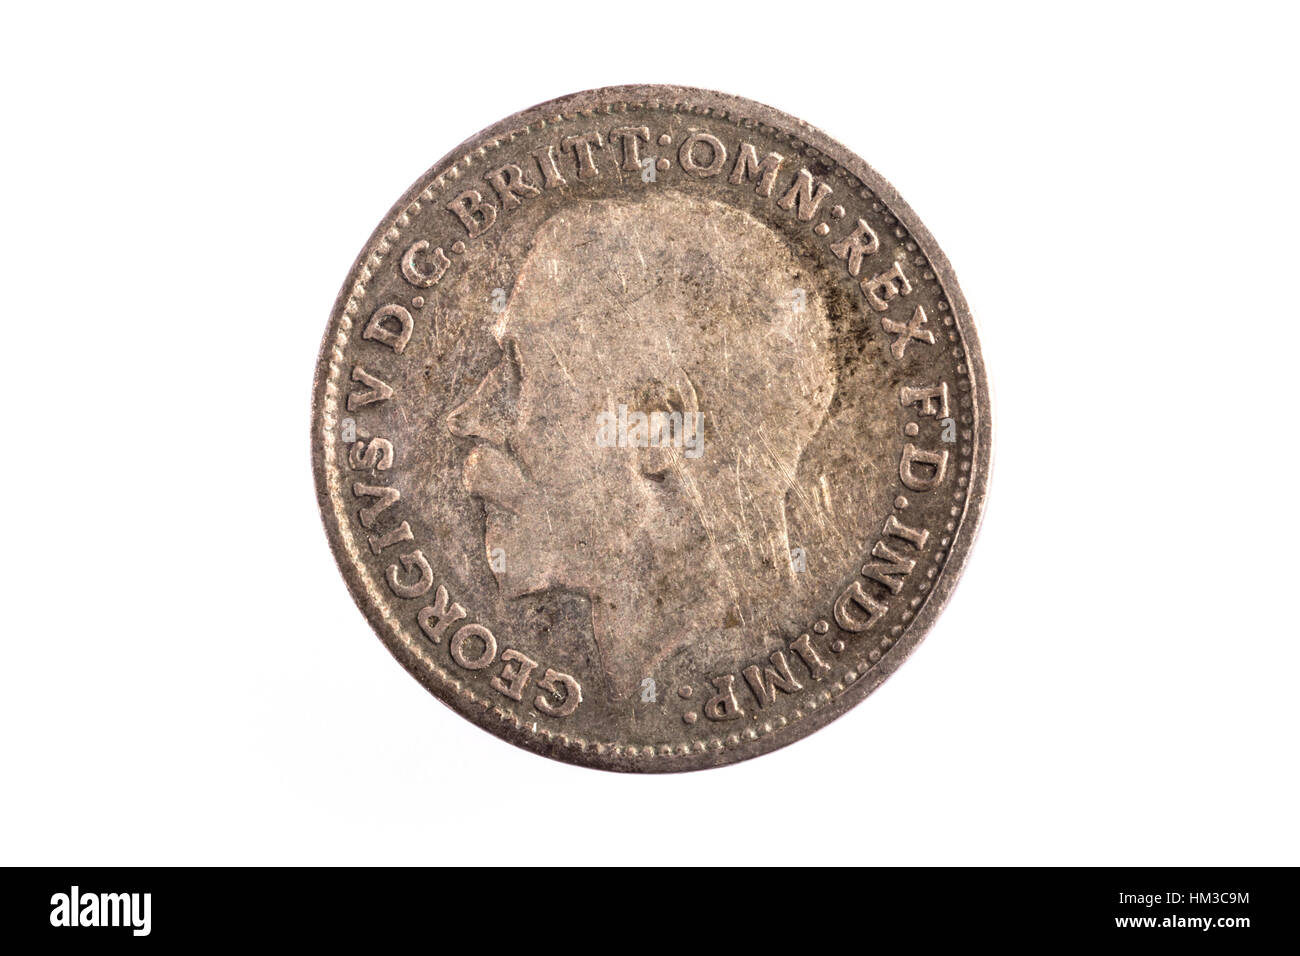 An Threepenny imperial coin with King George on the back - Stock Image